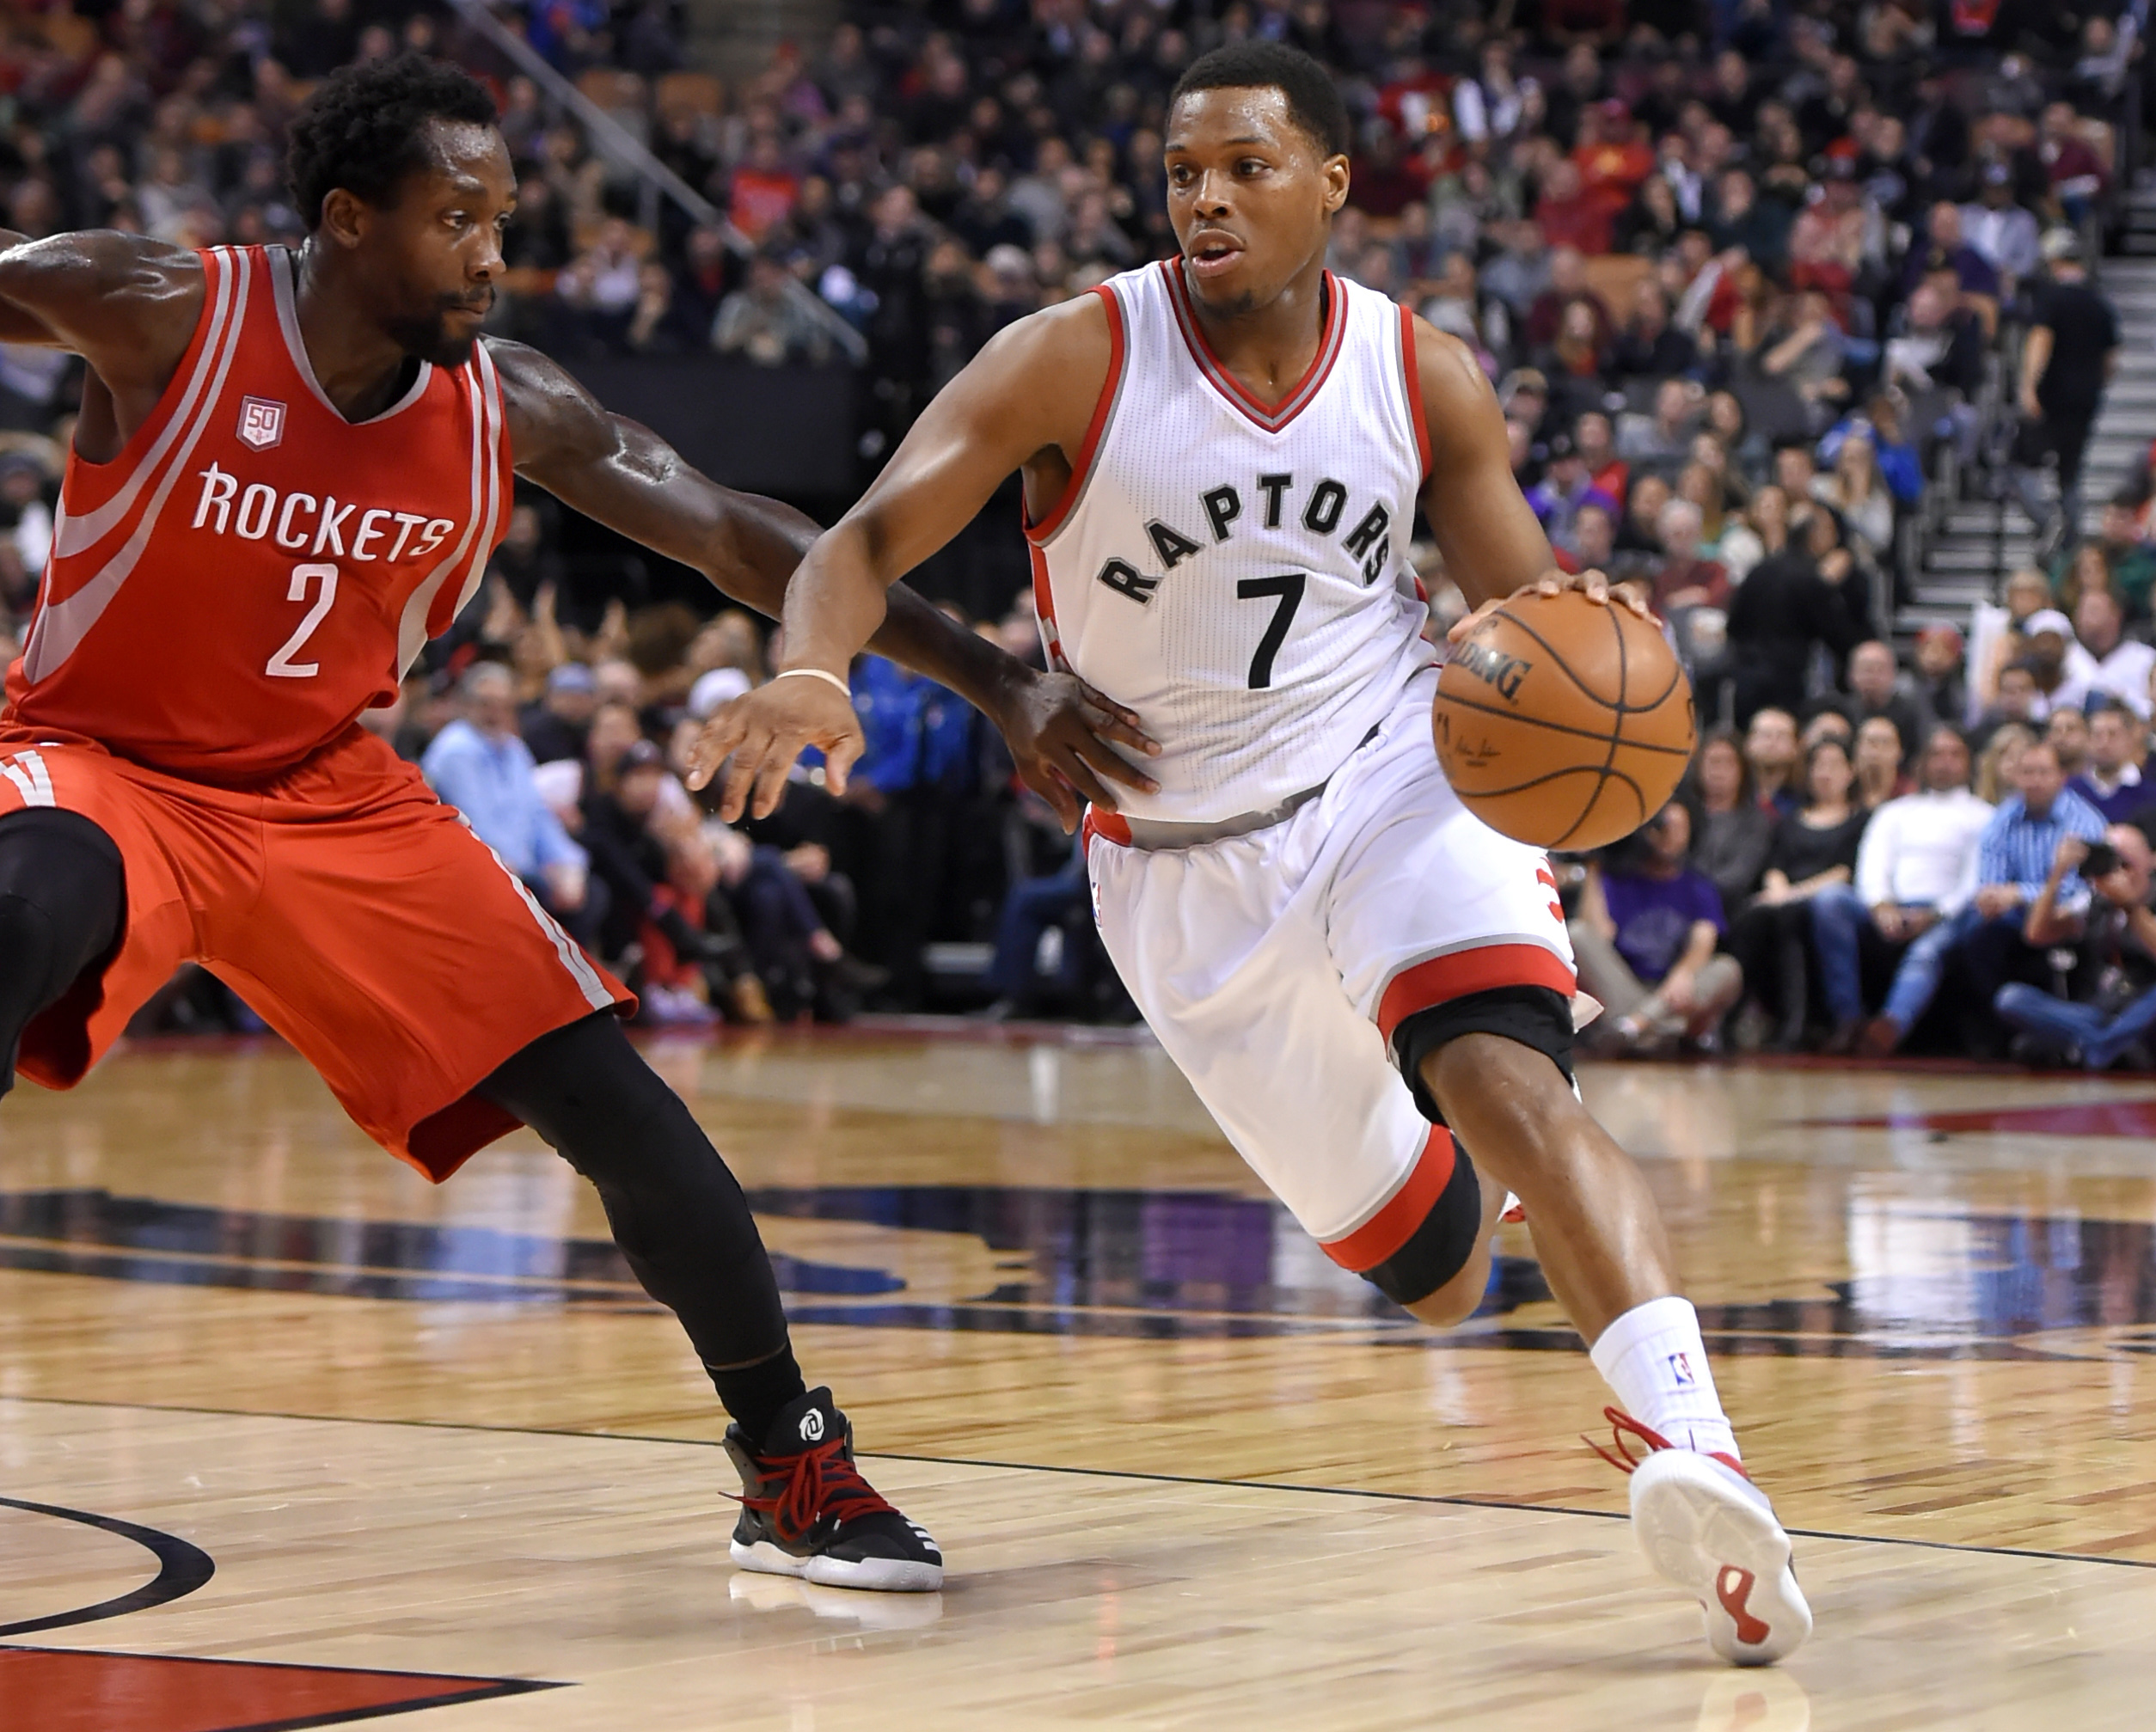 9798977-nba-houston-rockets-at-toronto-raptors